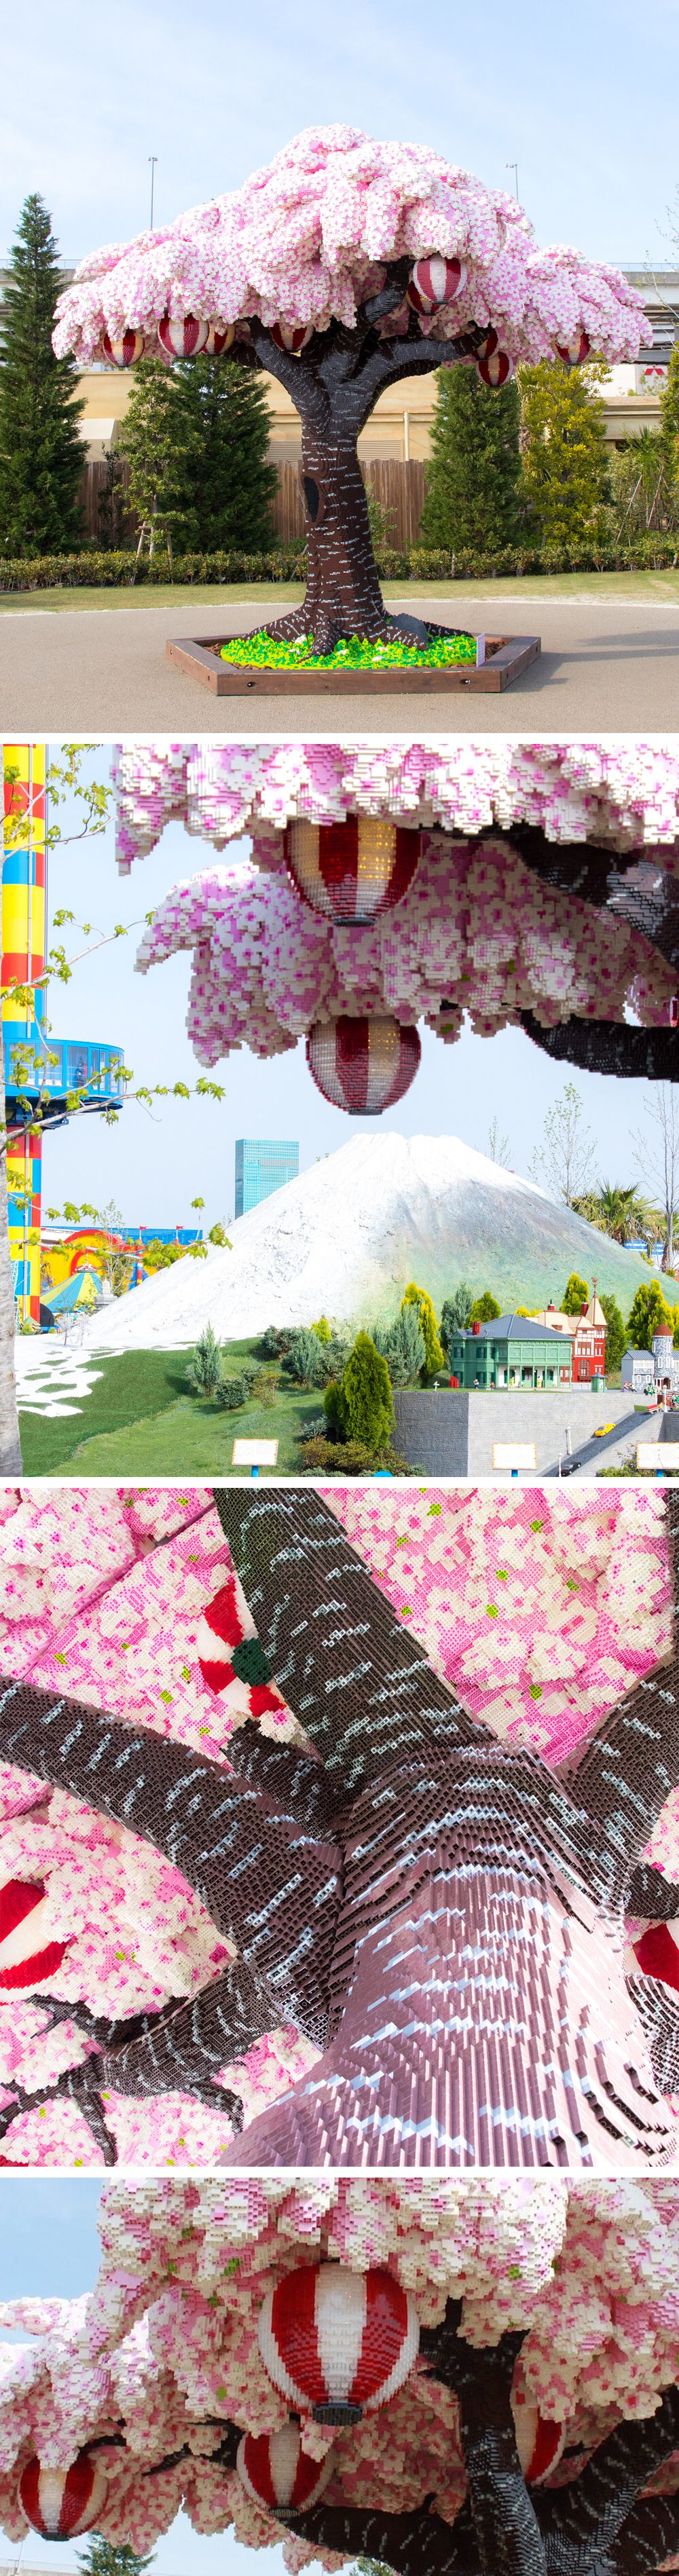 The World S Largest Lego Cherry Blossom Tree Blooms In Japan Sky Art Cherry Blossom Tree Cool Artwork